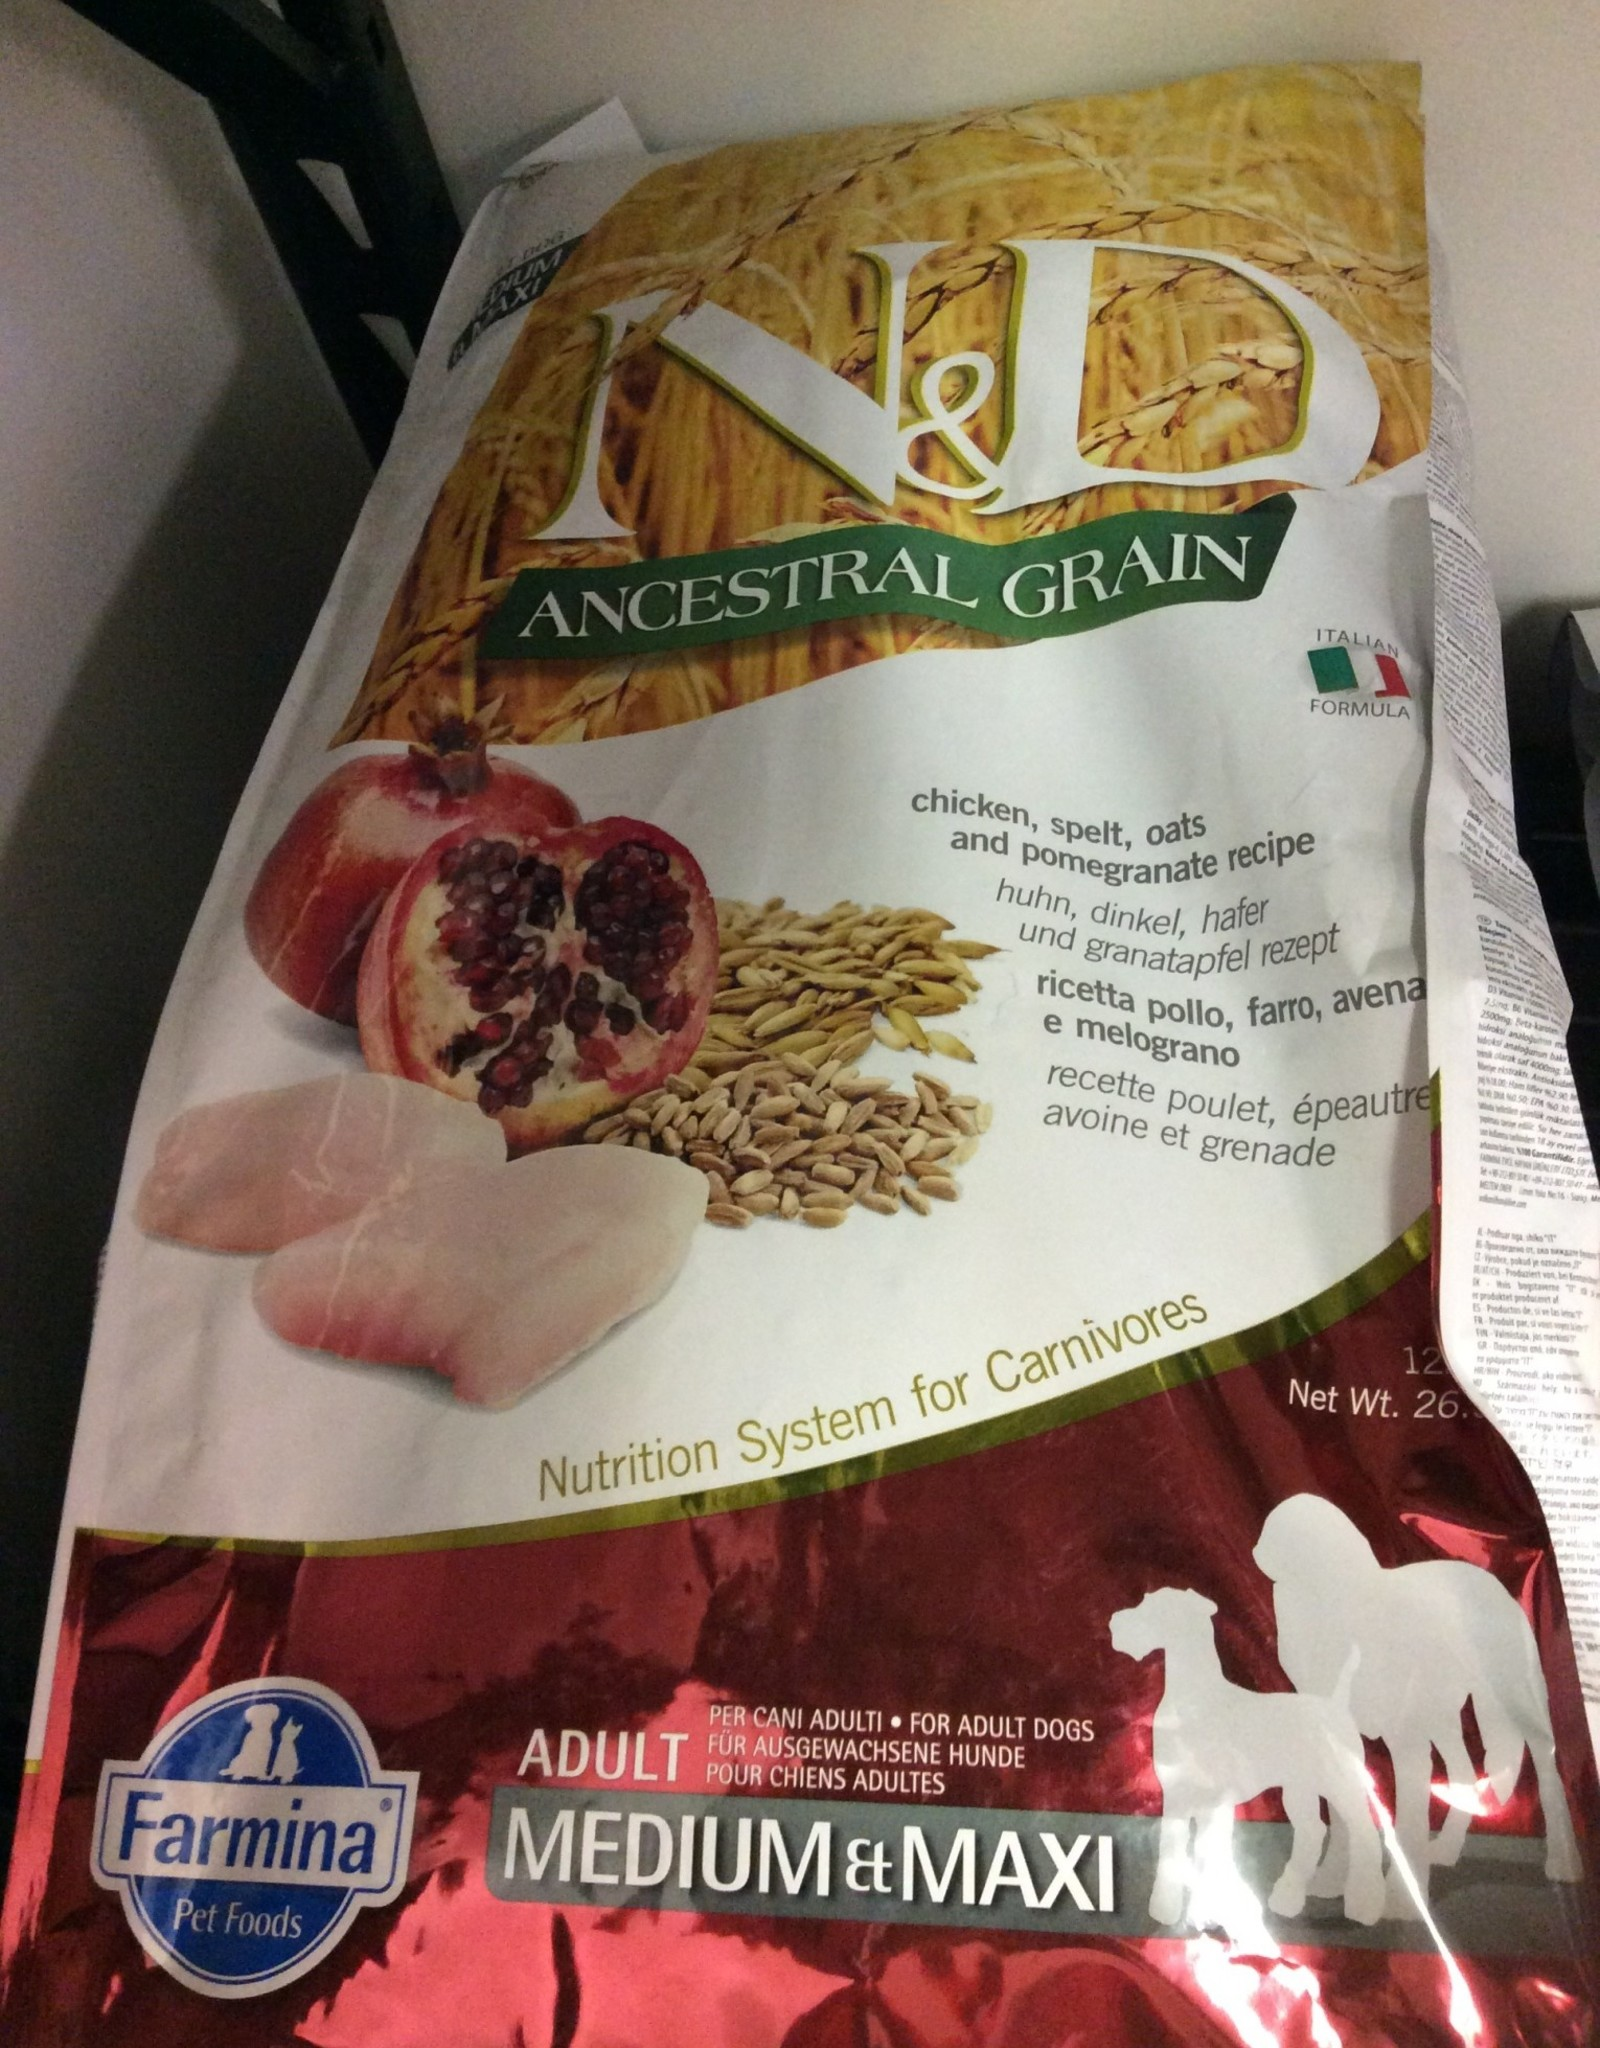 Farmina AG Chicken Pomegranate Adult Medium Maxi 26.5lb